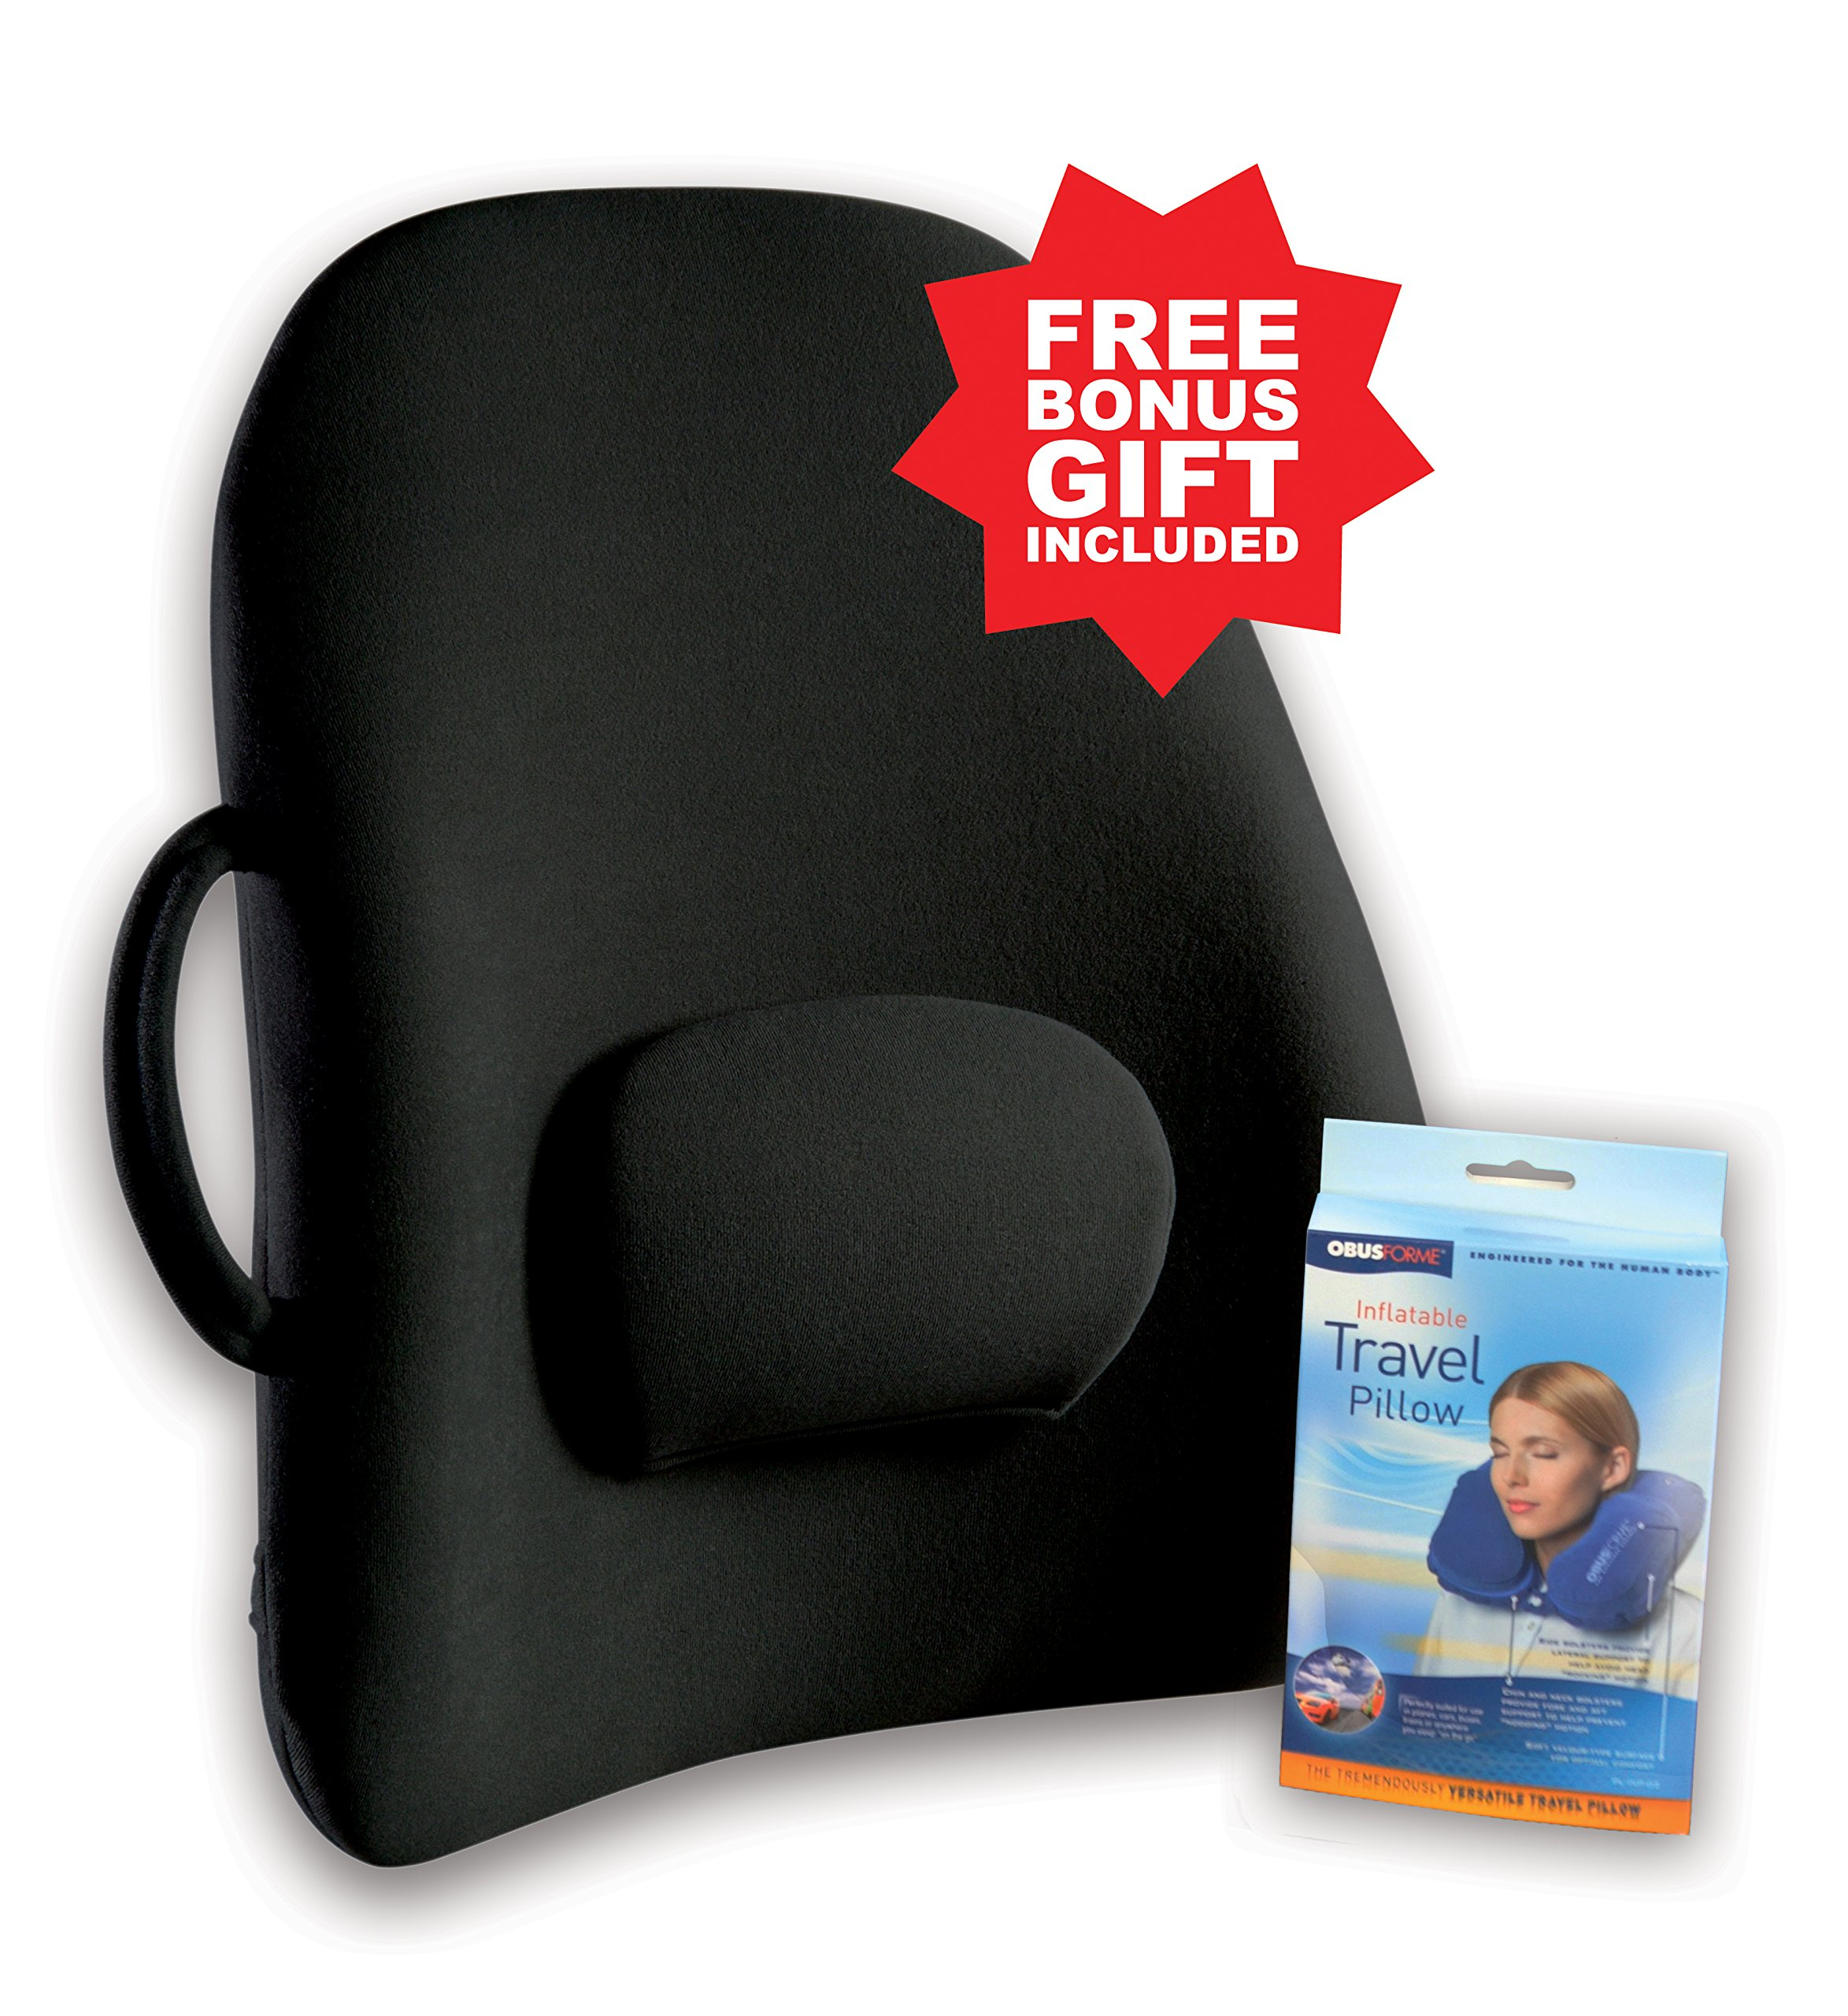 Obus Forme Ergonomic Lowback Backrest Support w/ Strap- FREE Gift!- Helps Relieve Back & Neck Pain- Great for Chairs, Travel & Home/Office/Car/Seat & Wheelchair- Adjustable Lumbar Cushion– Sciatica & Muscle Ache Relief- Lightweight, Portable & Comfortab